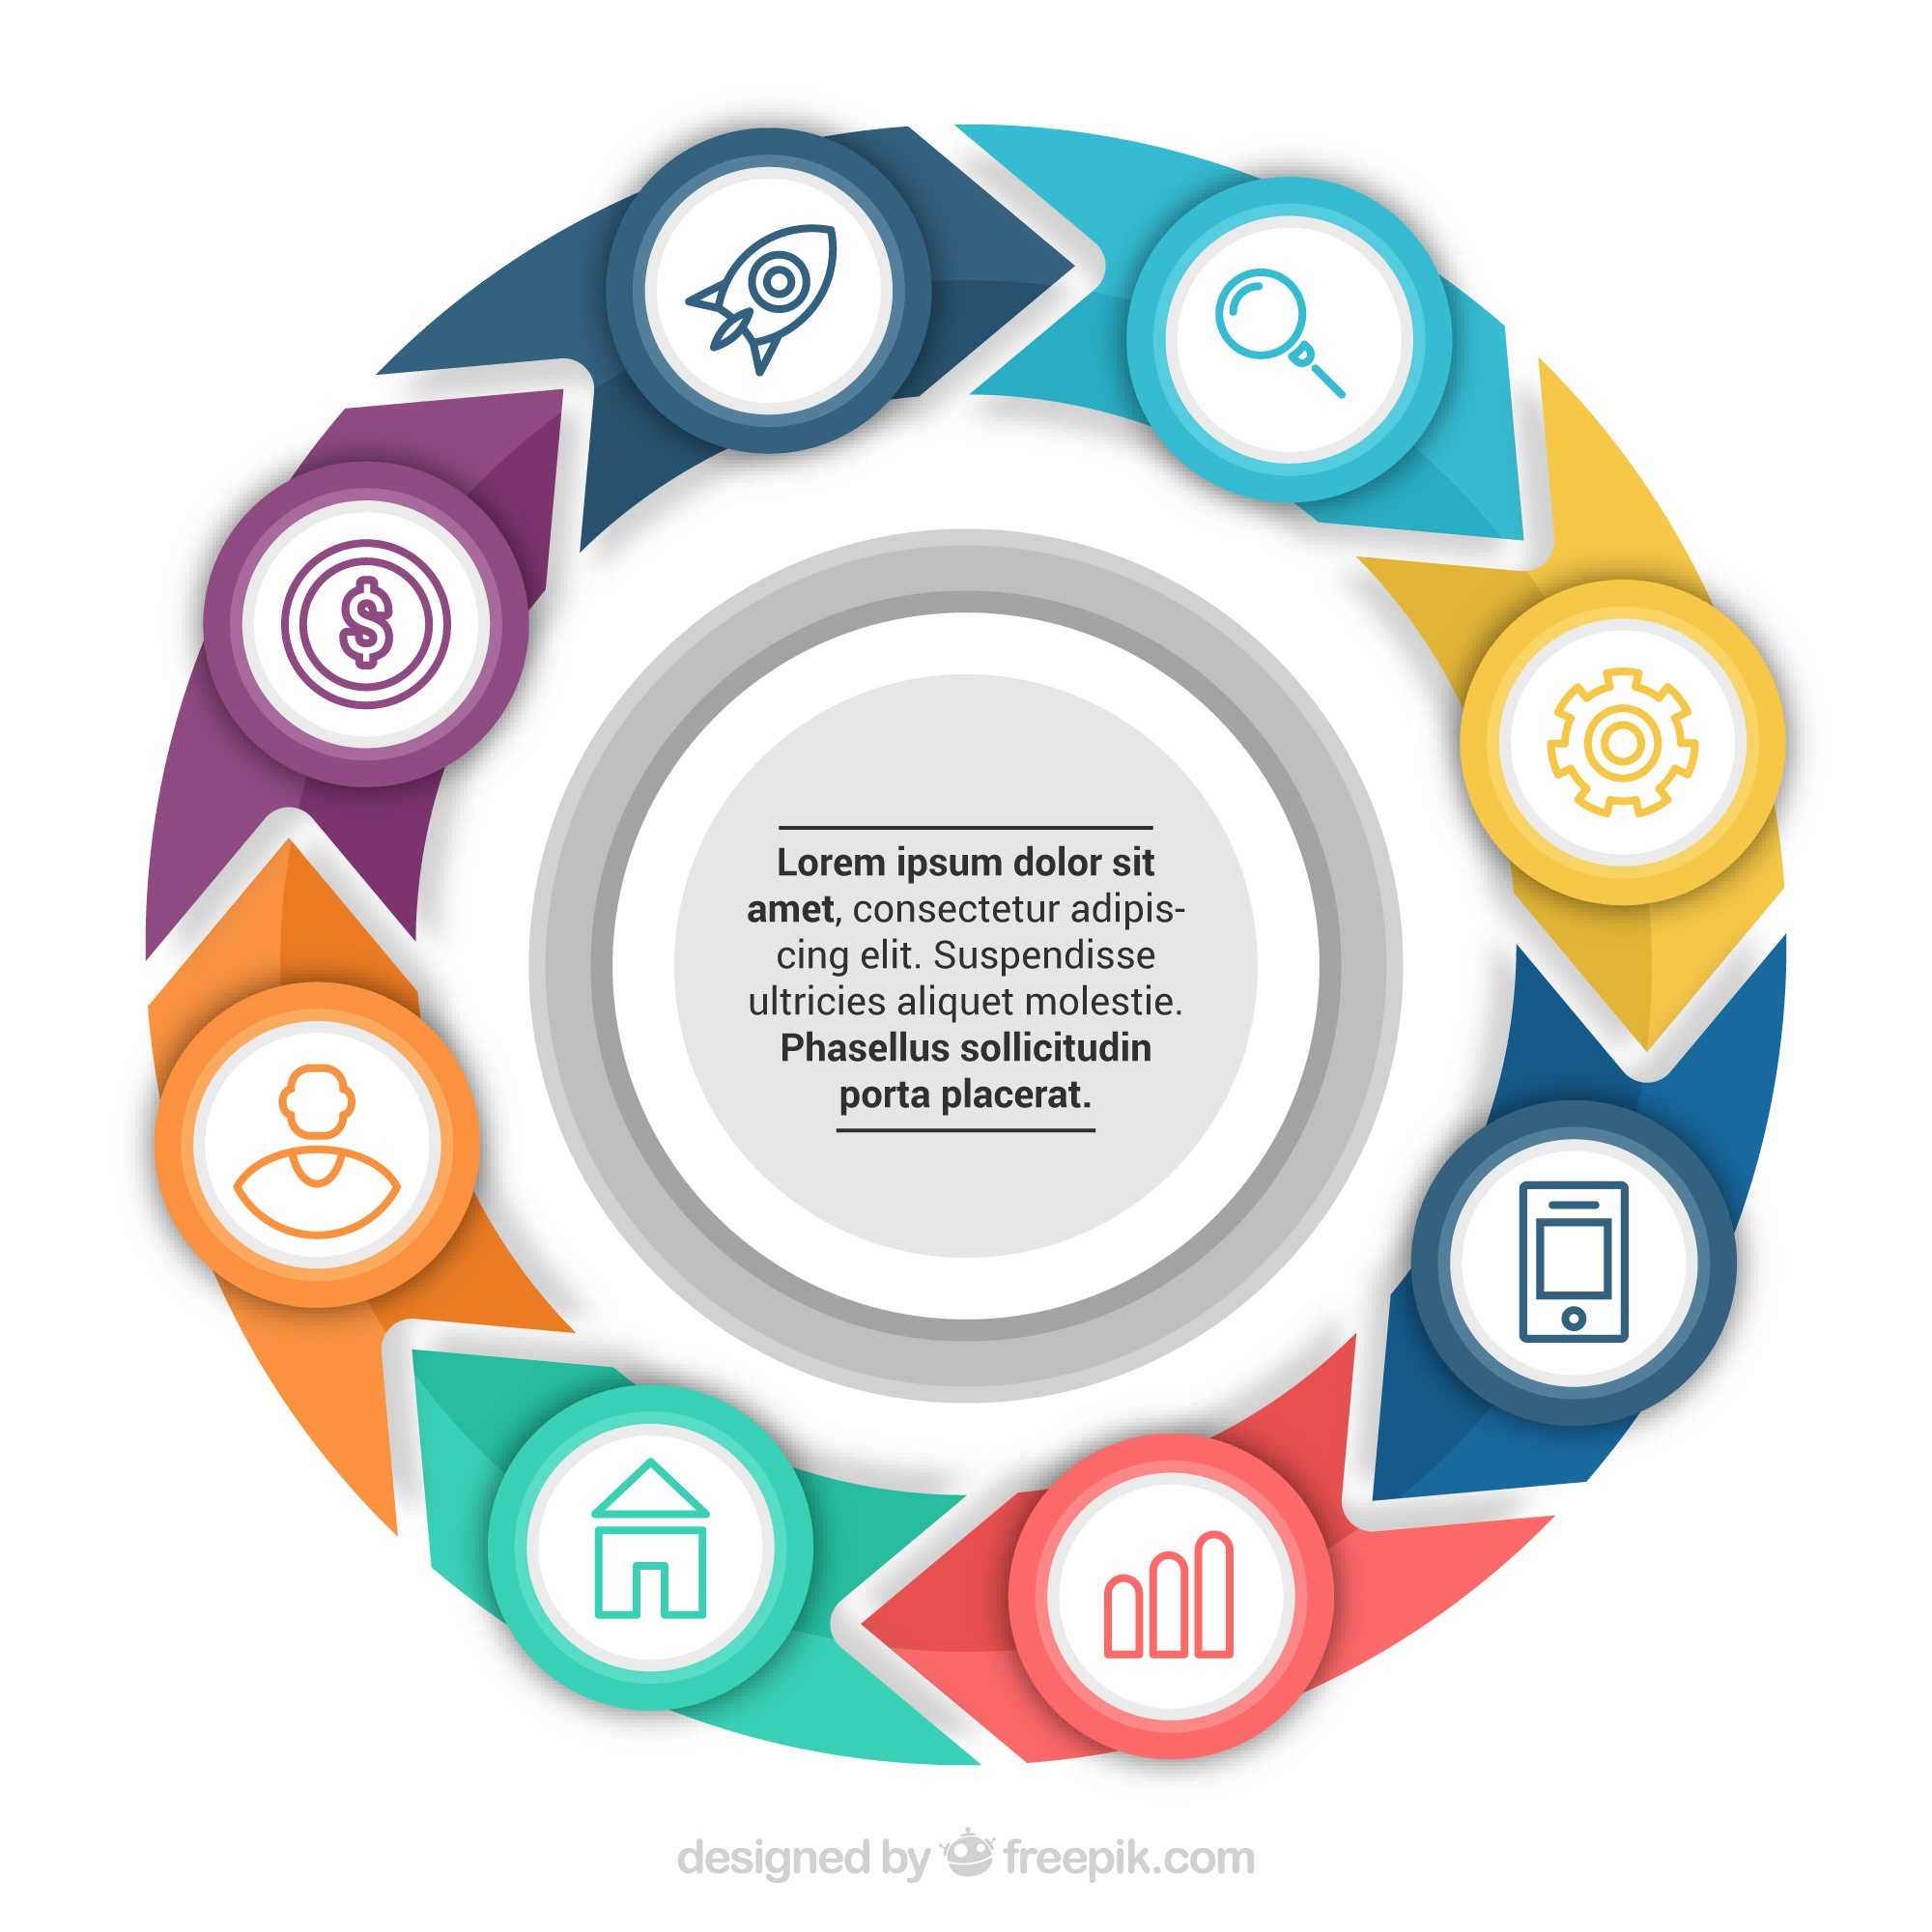 Circular infographic with colored arrows